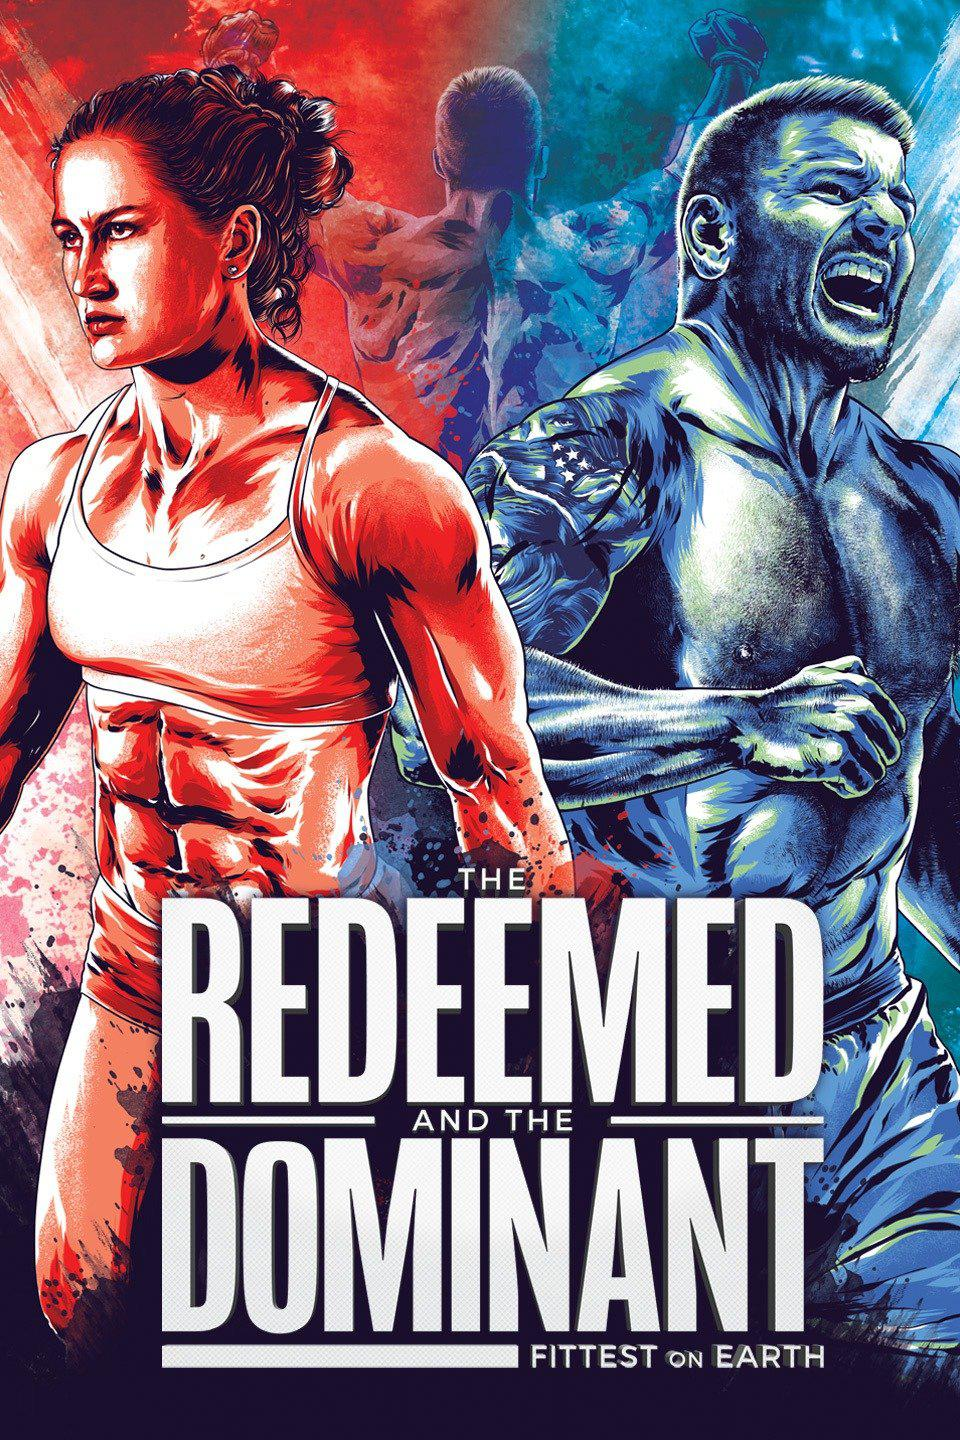 The Redeemed and the Dominant